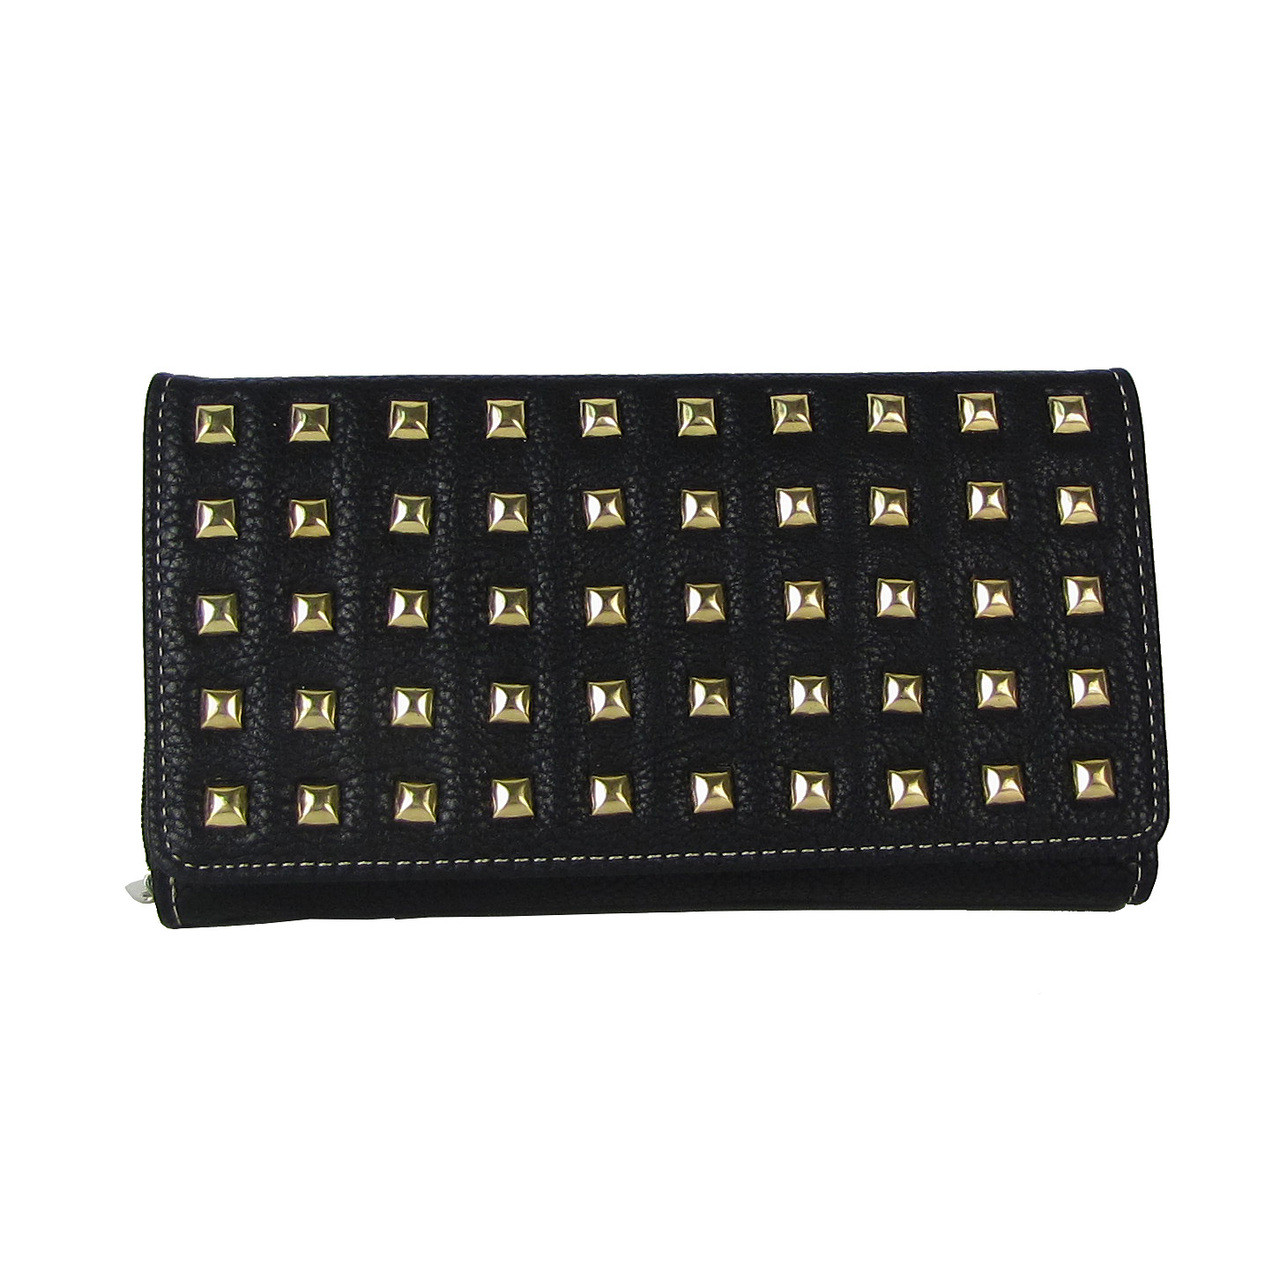 BLACK STUDDED LEATHERETTE LOOK CHECKBOOK WALLET CB1-1209BLK